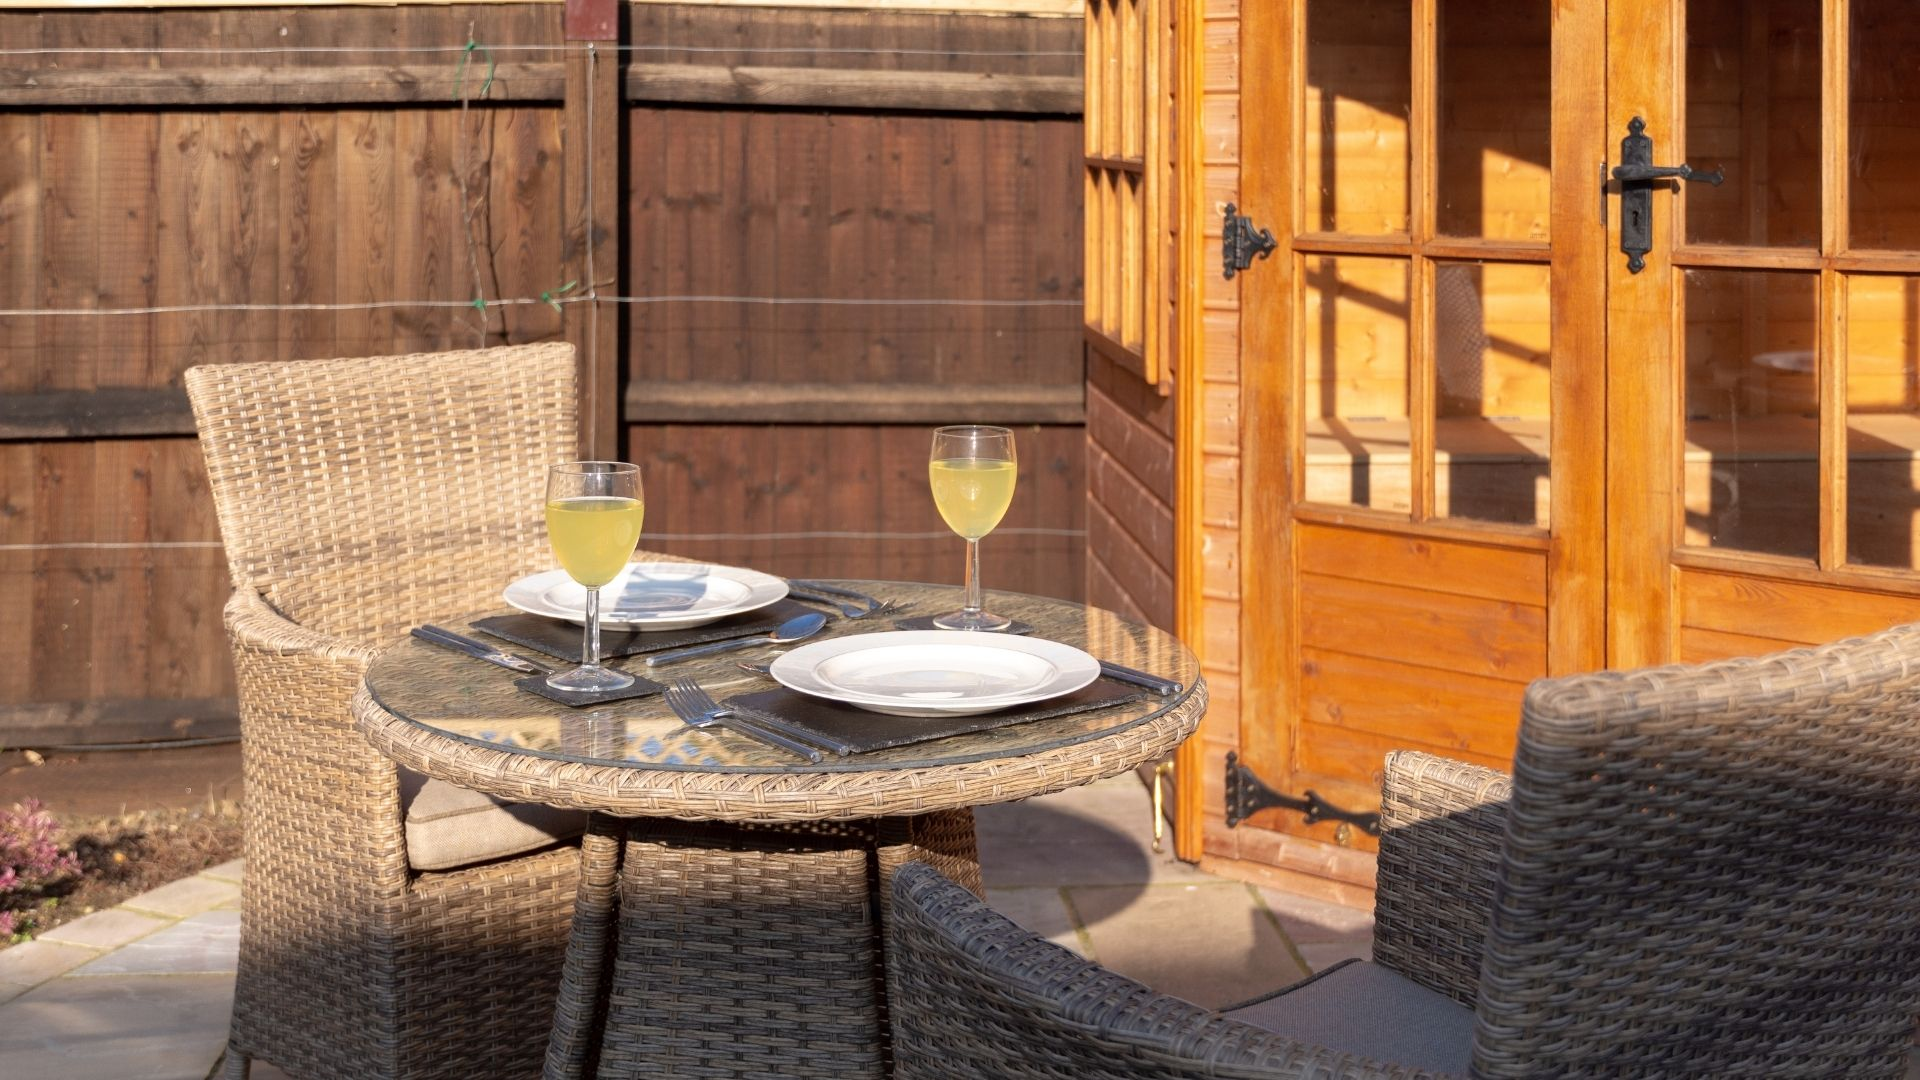 Ten recommendations for most pleasant outdoor dining at home